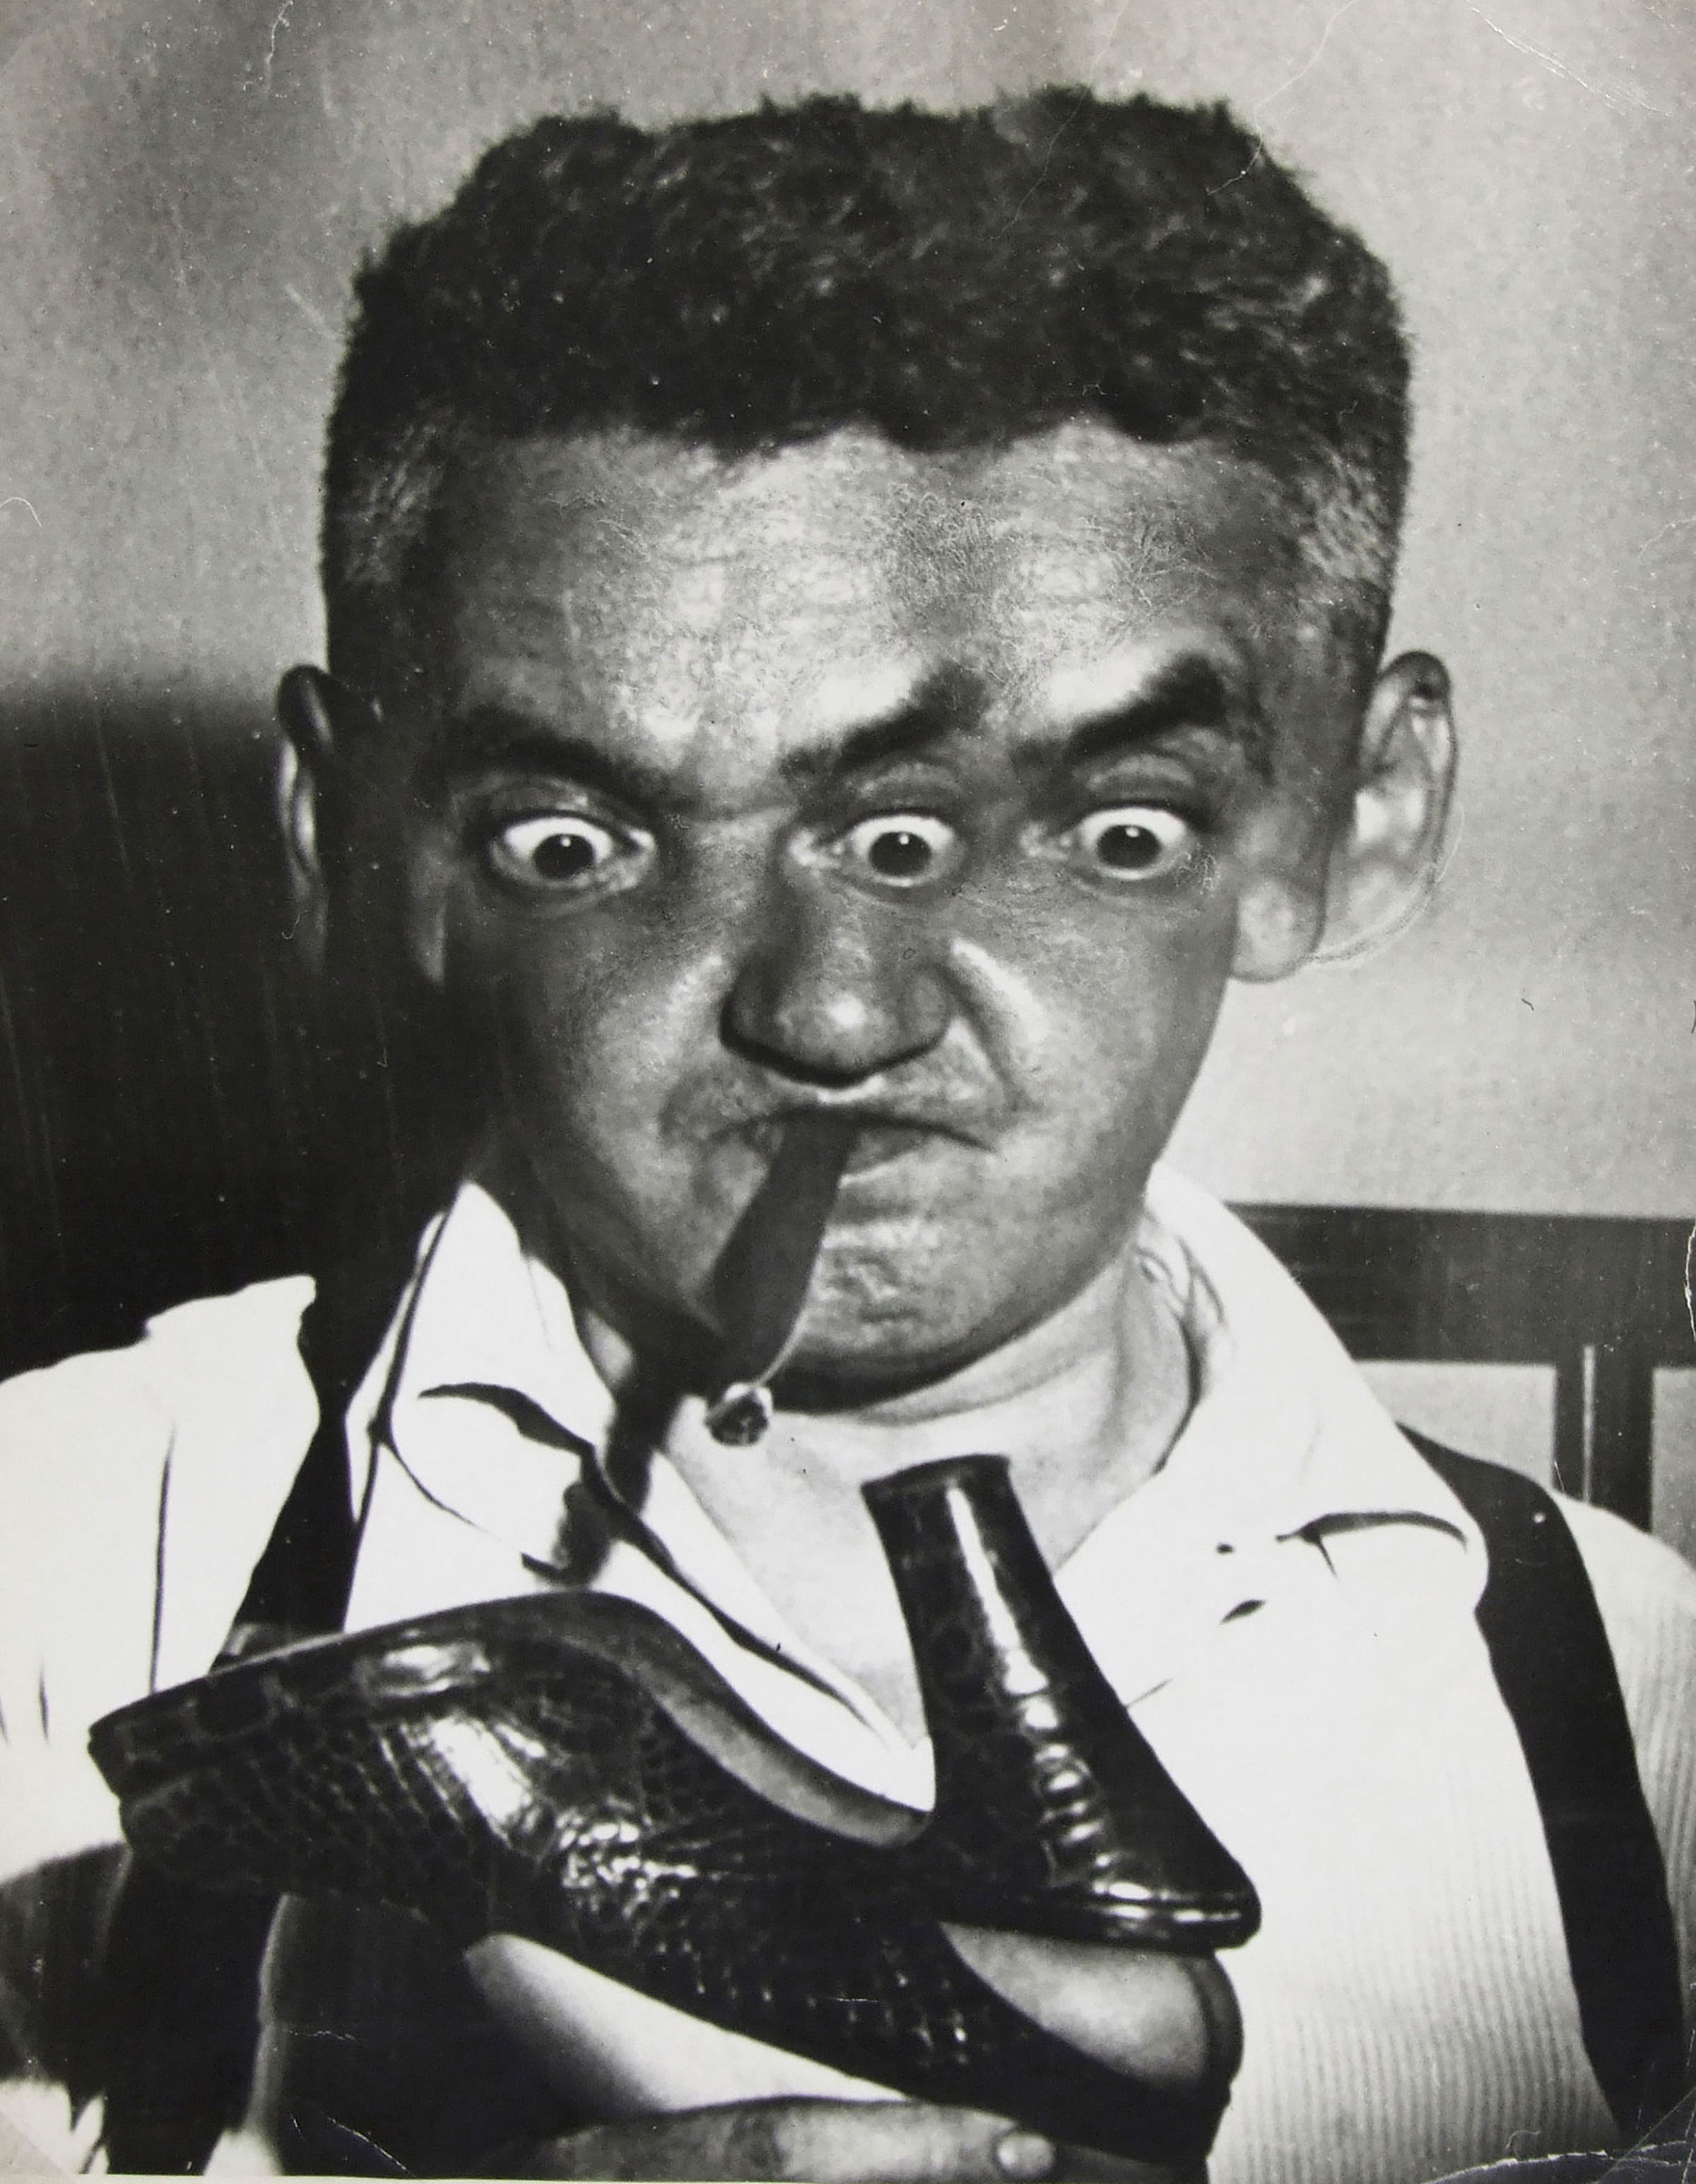 Weegee, <i>Self-Portrait (Talent Scout)</i>, ca. 1951. Eli and Edythe Broad Art Museum, Michigan State University, purchase, funded by the Kathleen D. and Milton E. Muelder Endowment.